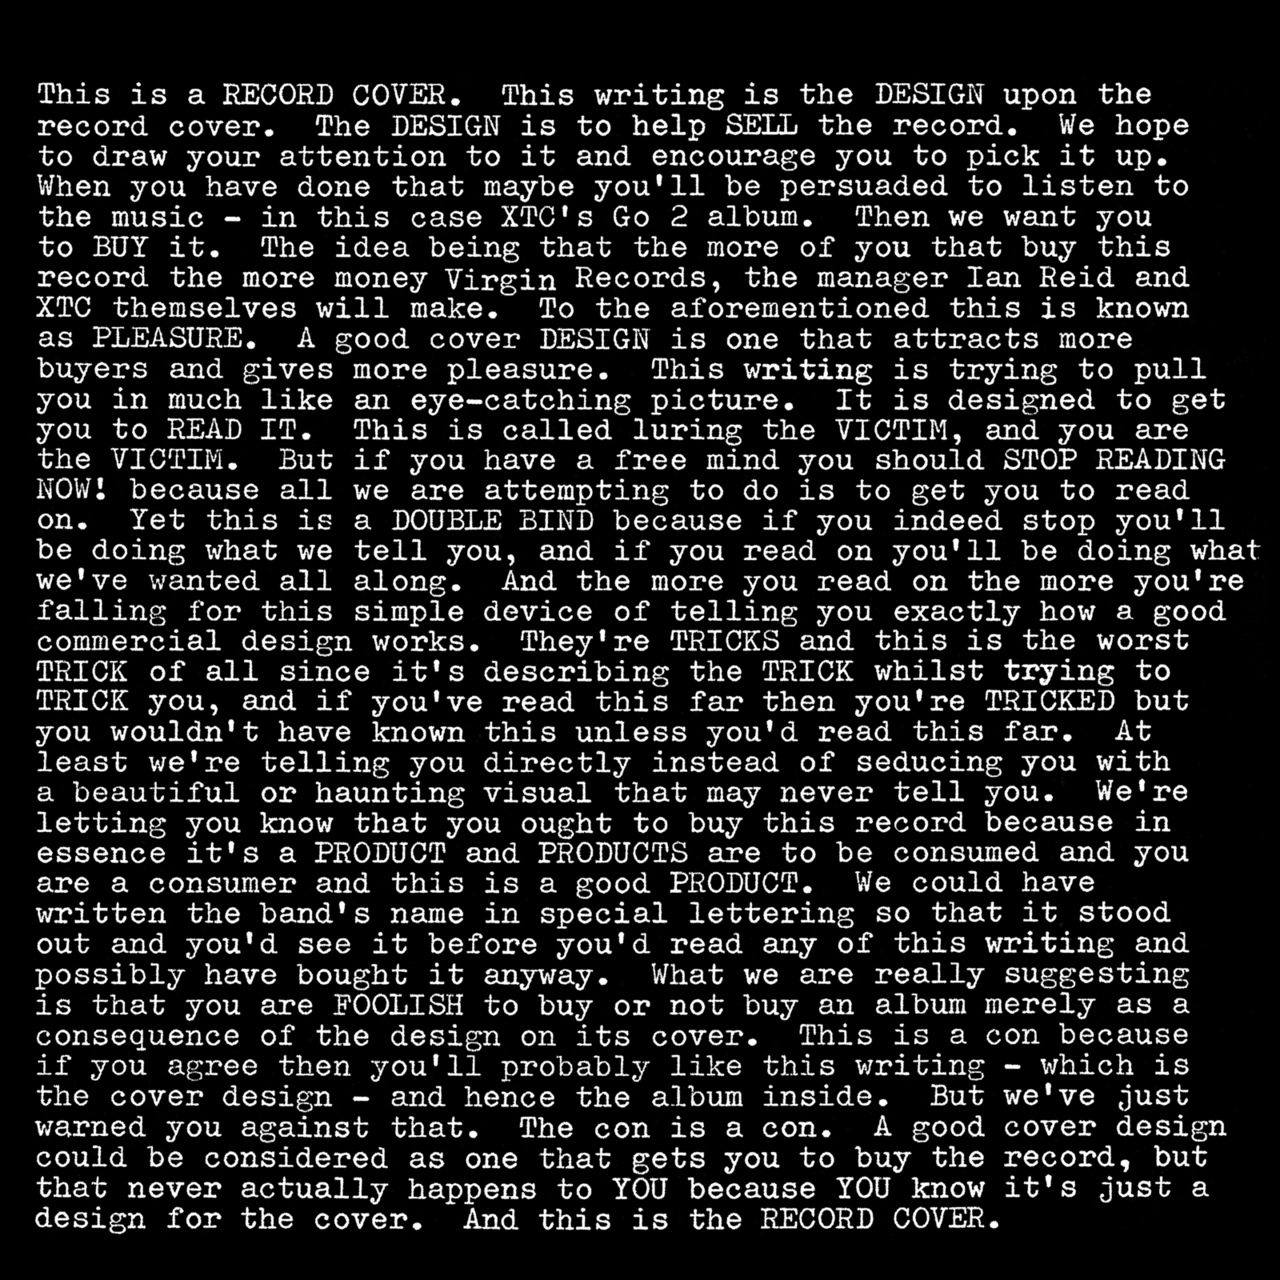 You must read this. So good.    merlin :      Chalkhills: XTC:  Go 2   (Design:  Hipgnosis , 1978)   Thirty-two years on,  still brilliant .   [ View larger ]     This is a RECORD COVER. This writing is the DESIGN upon the RECORD cover. The DESIGN is to help SELL the RECORD. We hope to draw your attention to it and encourage you to pick it up. When you have done that maybe you'll be persuaded to listen to the music - in this case XTC's Go 2 album. Then we want you to BUY it. The idea being that the more of you that buy this RECORD the more money Virgin Records, the manager Ian Reid and XTC themselves will make. To the aforementioned this is known as PLEASURE. A good cover DESIGN is one that attracts more buyers and gives more pleasure. This writing is trying to pull you in much like an eye-catching picture. It is designed to get you to READ IT. This is called luring the VICTIM, and you are the VICTIM. But if you have a free mind you should STOP READING NOW! because all we are attempting to do is to get you to read on. Yet this is a DOUBLE BIND because if you indeed stop you'll be doing what we tell you, and if you read on you'll be doing what we've wanted all along. And the more you read on the more you're falling for this simple device of telling you exactly how a good commercial design works. They're TRICKS and this is the worst TRICK of all since it's describing the TRICK whilst trying to TRICK you, and if you've read this far then you're TRICKED but you wouldn't have known this unless you'd read this far. At least we're telling you directly instead of seducing you with a beautiful or haunting visual that may never tell you. We're letting you know that you ought to buy this record because in essence it's a PRODUCT and PRODUCTS are to be consumed and you are a consumer and this is a good PRODUCT. We could have written the band's name in special lettering so that it stood out and you'd see it before you'd read any of this writing and possibly have bought it anyway.